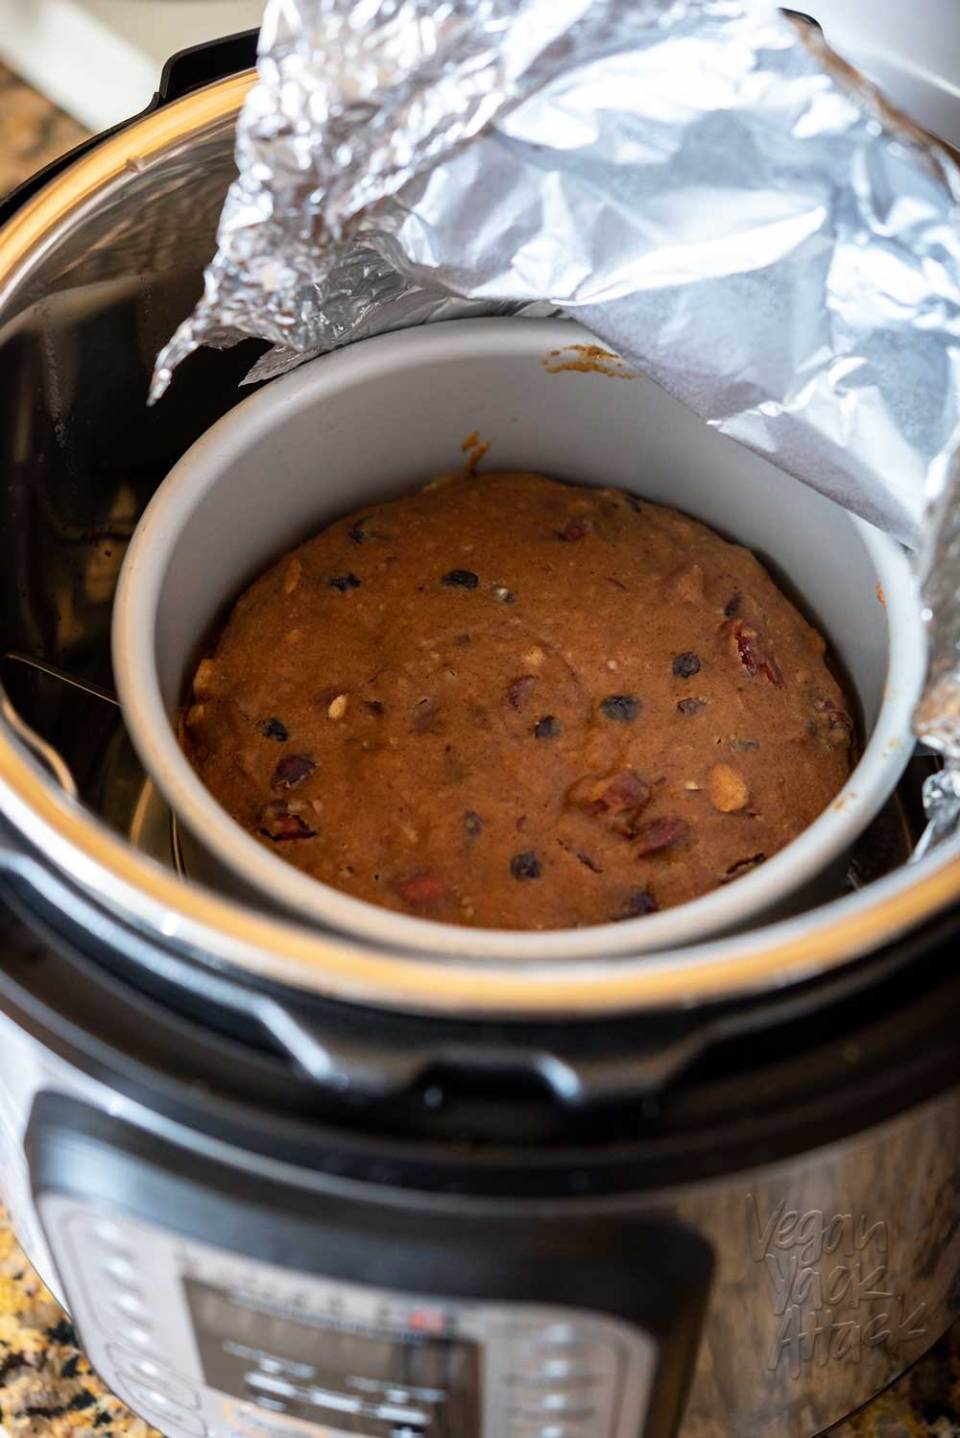 Kathy Hester shows us how with her recipe for Holiday Orange Spice Cake, from The Ultimate Vegan Cookbook for your Instant Pot! #vegan #plantbased #holidays #cookbook #cake